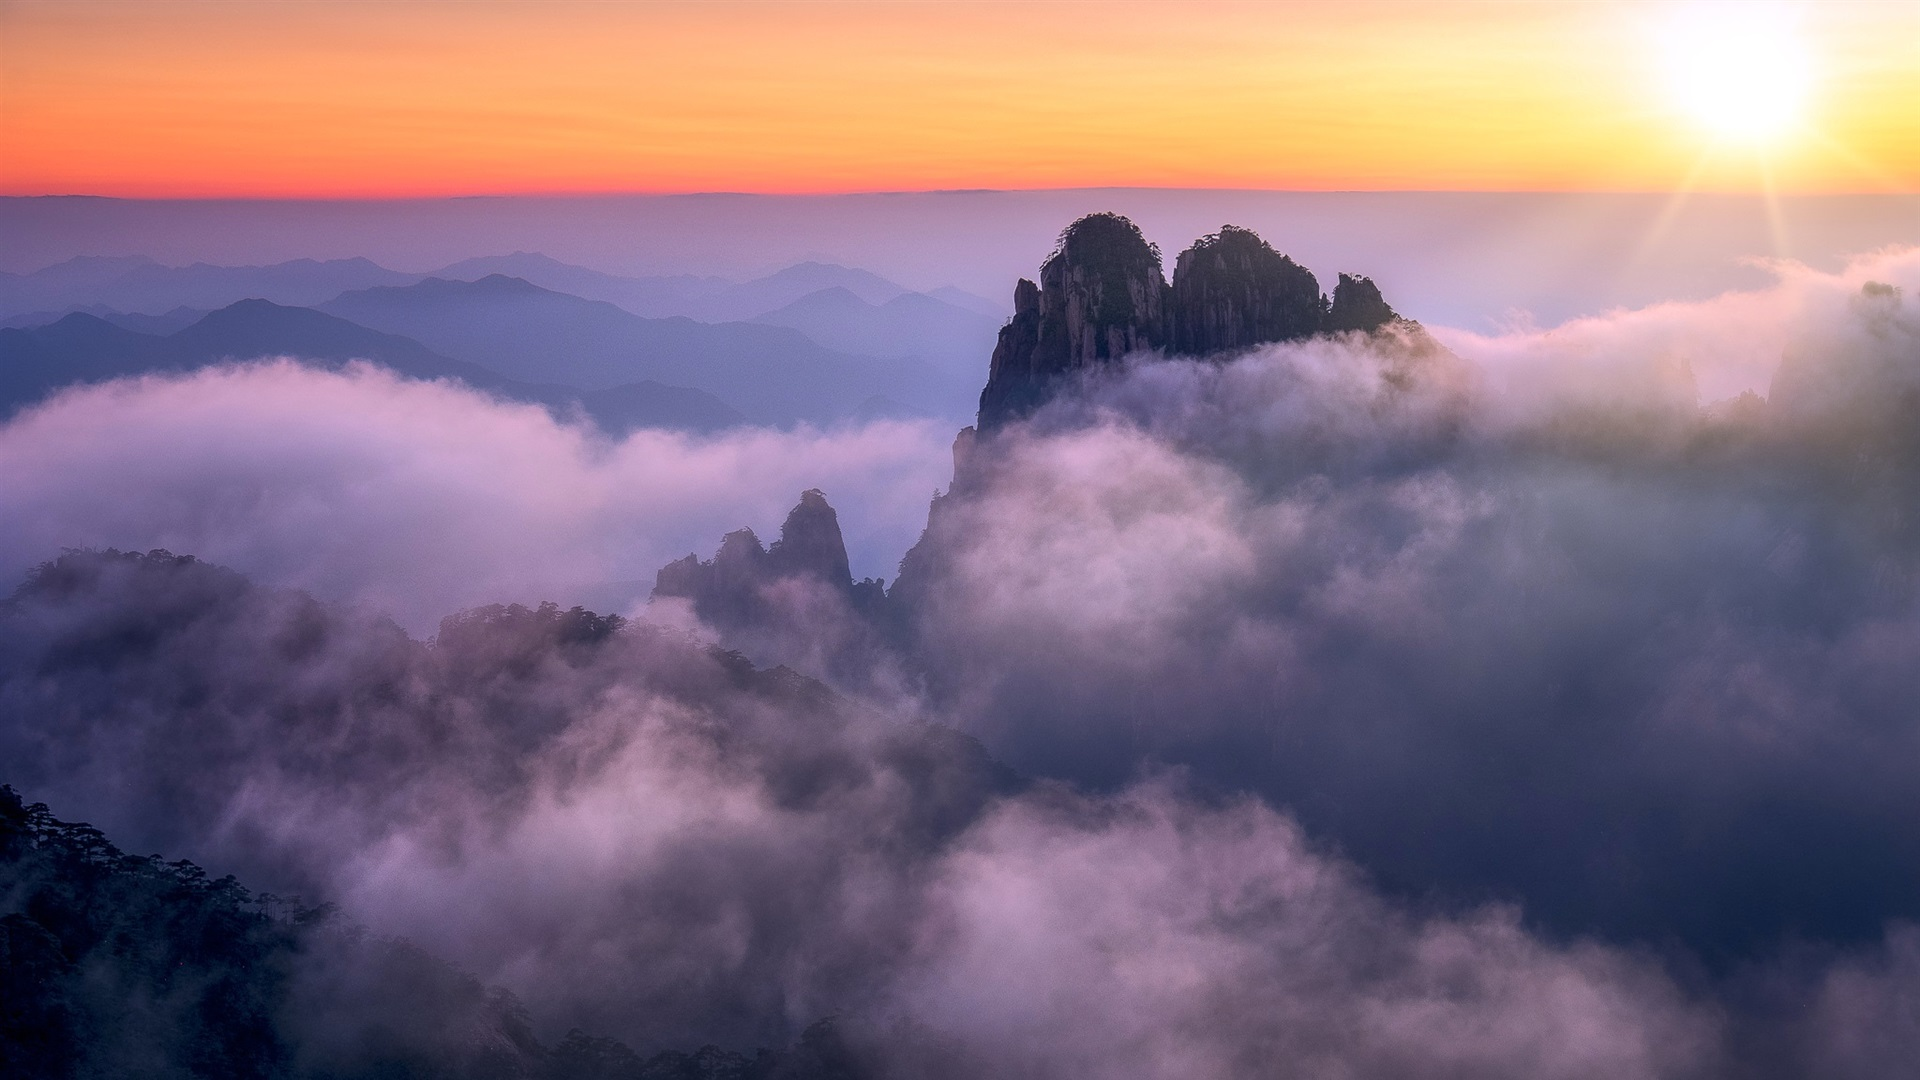 wallpaper anhui, huangshan, china, mountains, fog, morning, sunrise